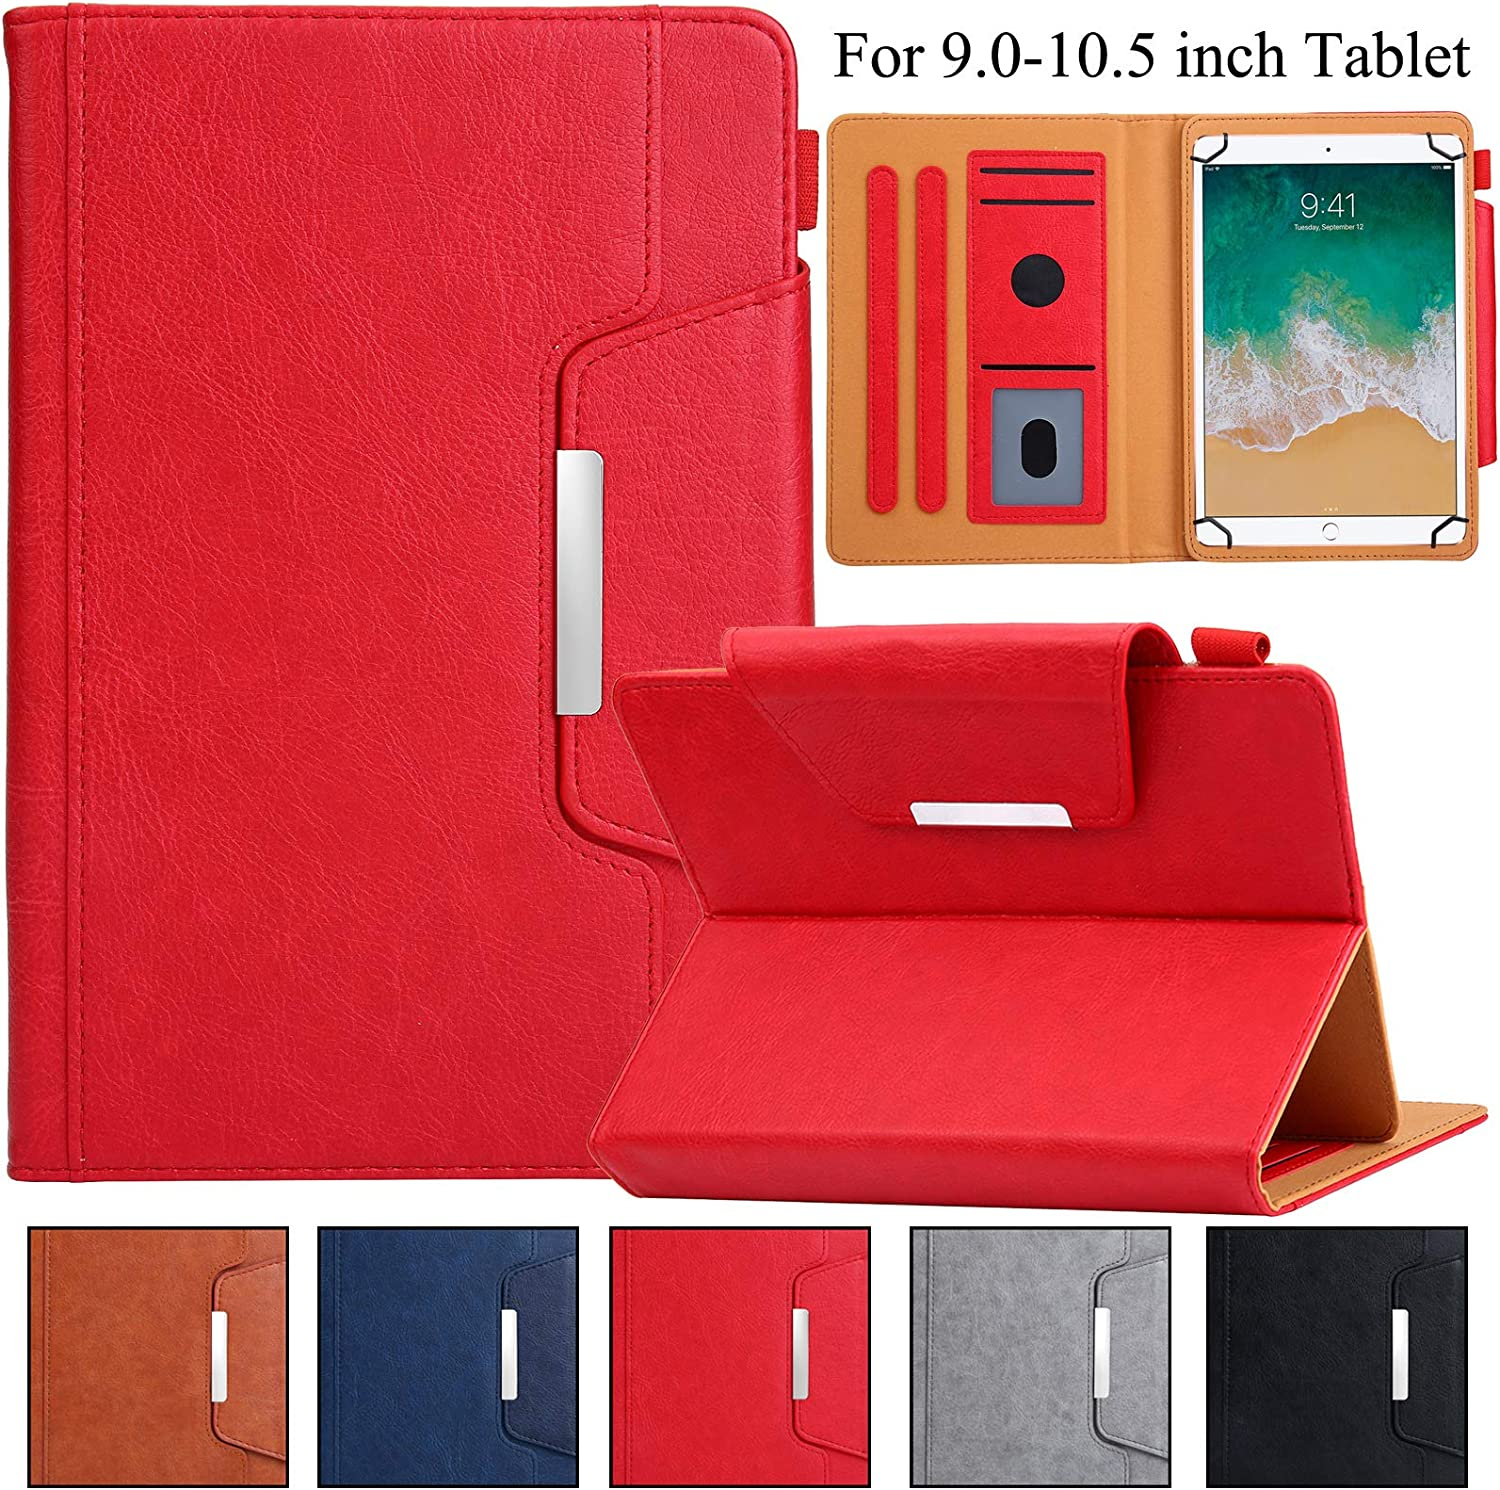 """Universal Case for 9.5""""-10.5"""" Tablet, Artyond PU Leather Cover Slim Fit Folio Cards Slots Case for All Fire HD 10, iPad 9.7 and More 9.6"""" 9.7"""" 10.1"""" 10.5"""" Android iOS Tablet (Red)"""